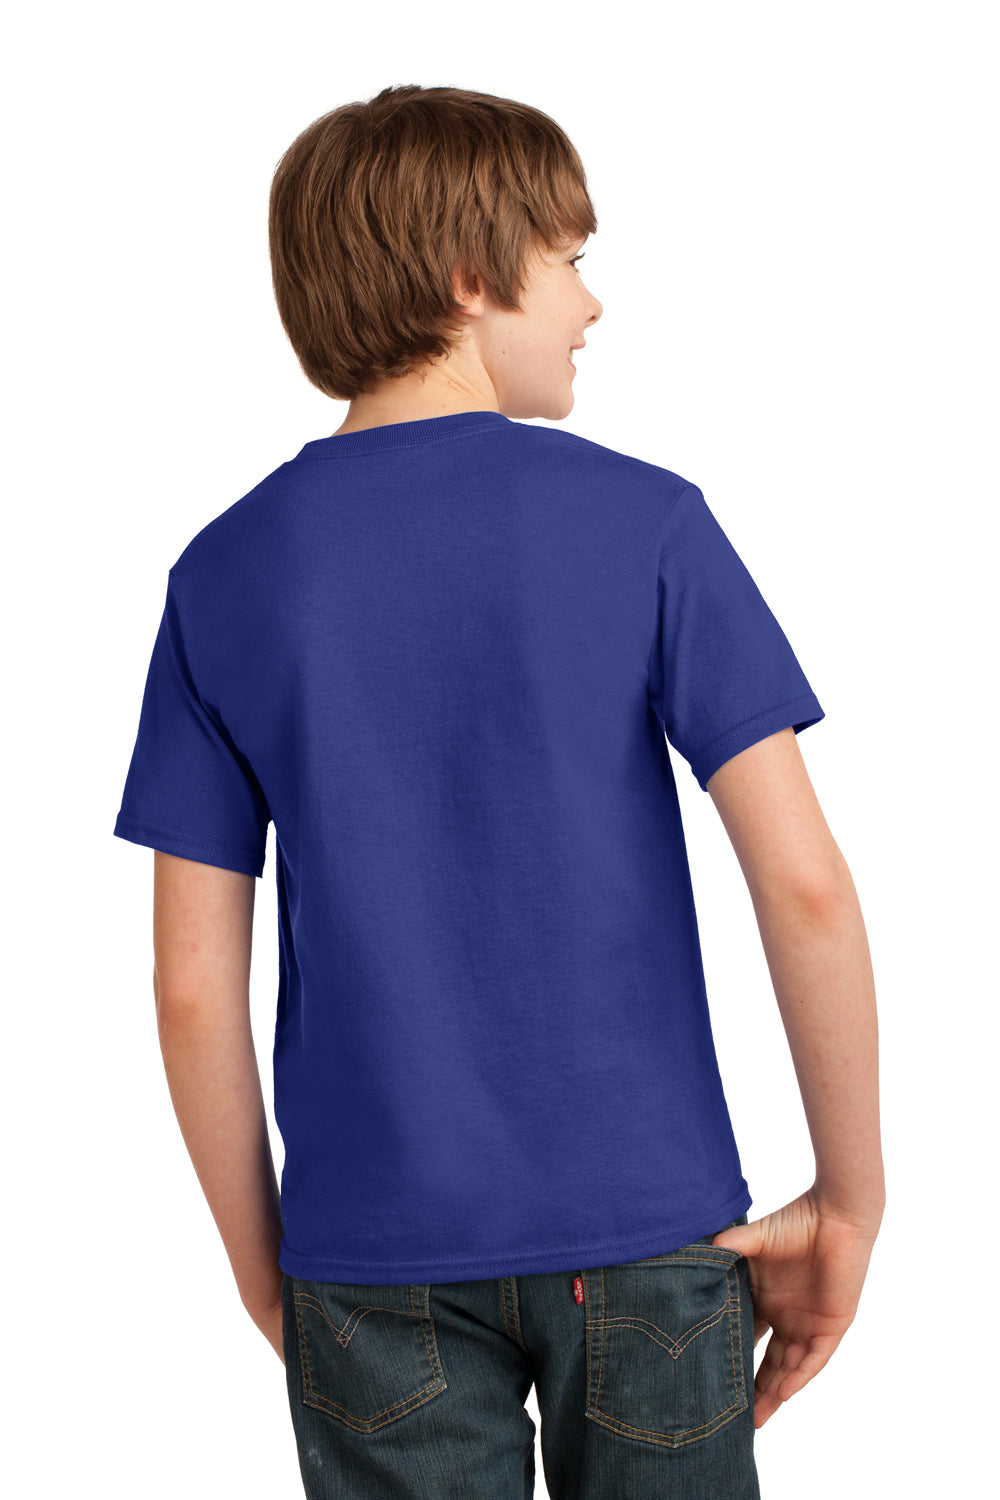 Port & Company PC61Y Youth Essential Short Sleeve Crewneck T-Shirt Deep Marine Blue Back